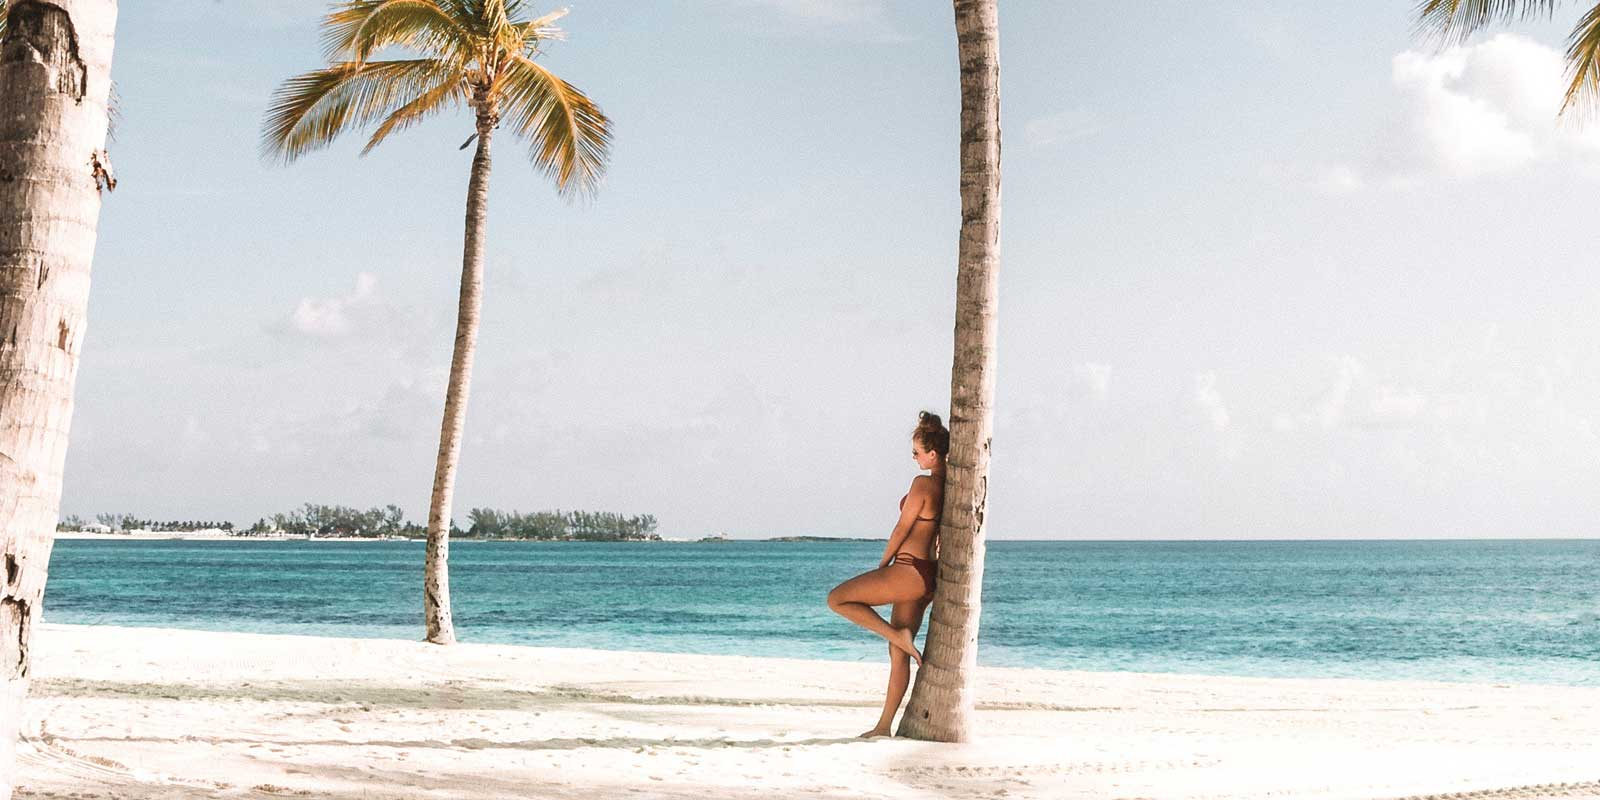 Woman leaning against a palm tree on a deserted beach in Sri Lanka